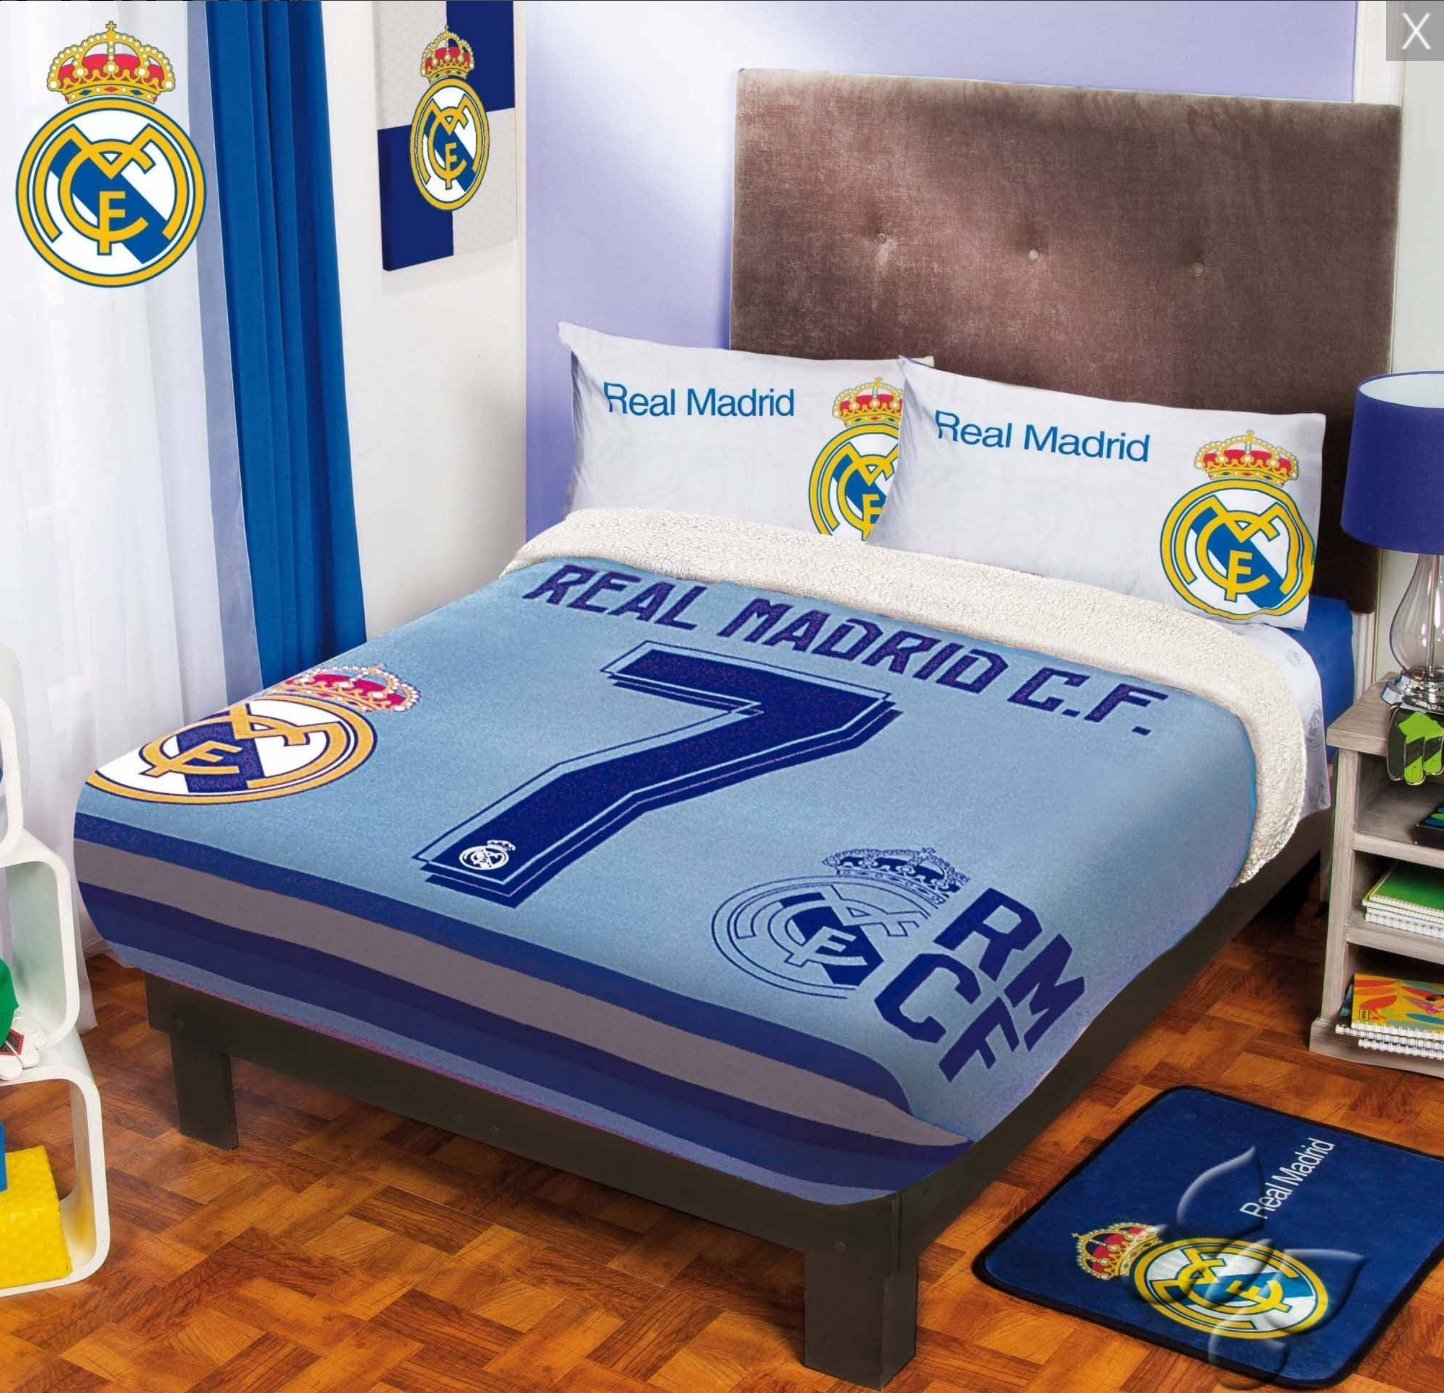 CRISTIANO RONALDO CR7 REAL MADRID C.F. ORIGINAL LICENSED FUZZY FLEECE BLANKET 4 PCS TWIN SIZE